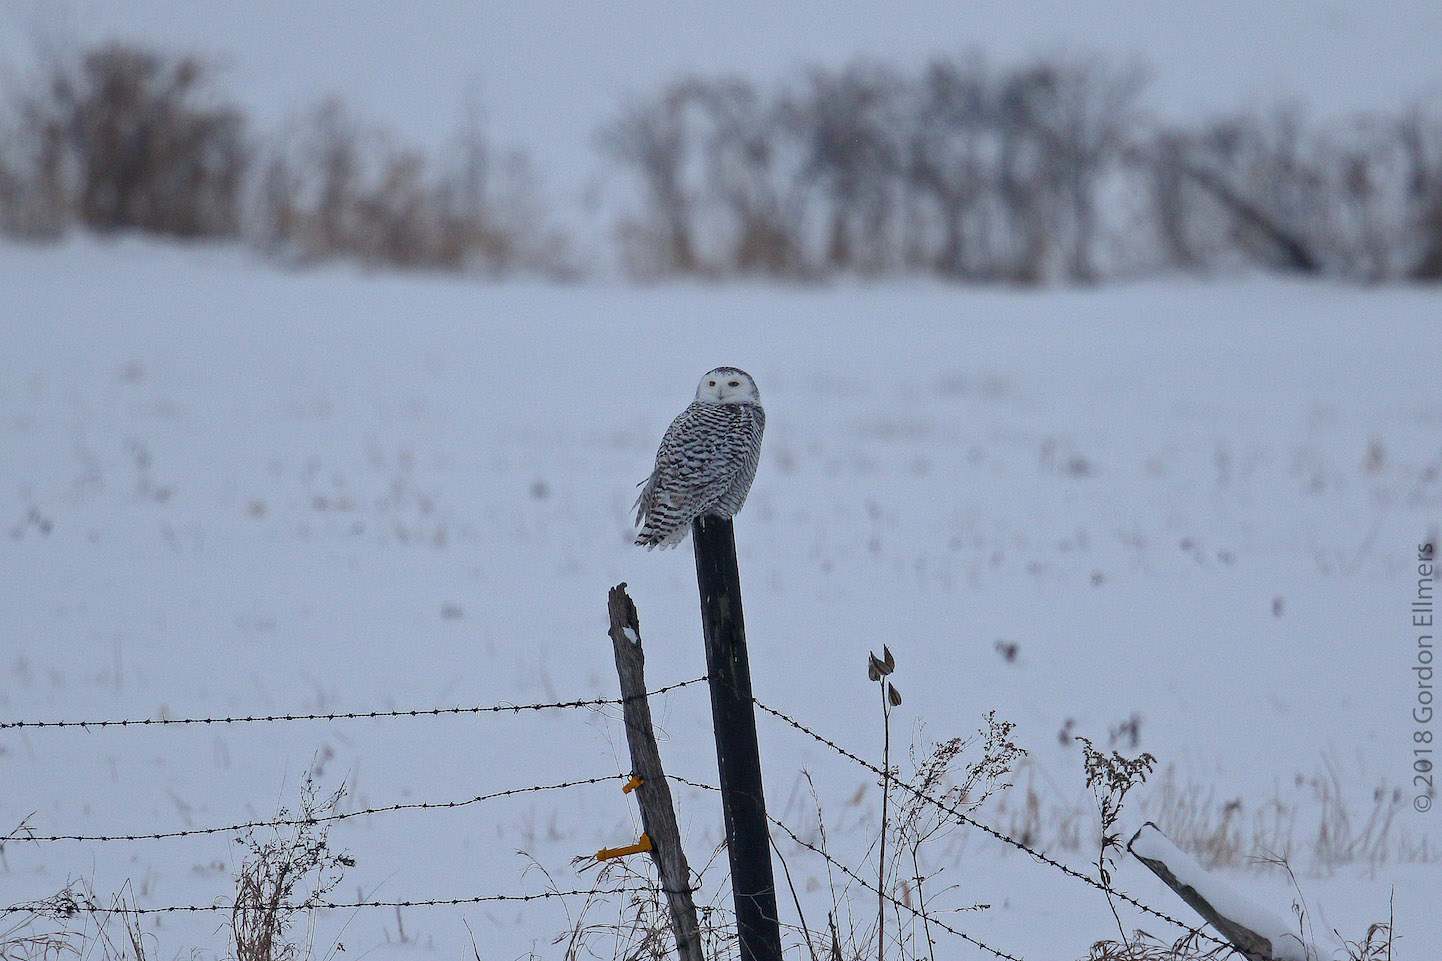 SNOWY OWL AT SUNSET. HELP TO KEEP THEM SAFE, HEALTHY, AND COMING BACK TO WINTER IN THE US NORTHEAST. FOLLOW THE GUIDELINES FROM SCOTT KRUITBOSCH AND THE ROGER TORY PETERSON INSTITUTE. IMAGE: ©GORDON ELLMERS